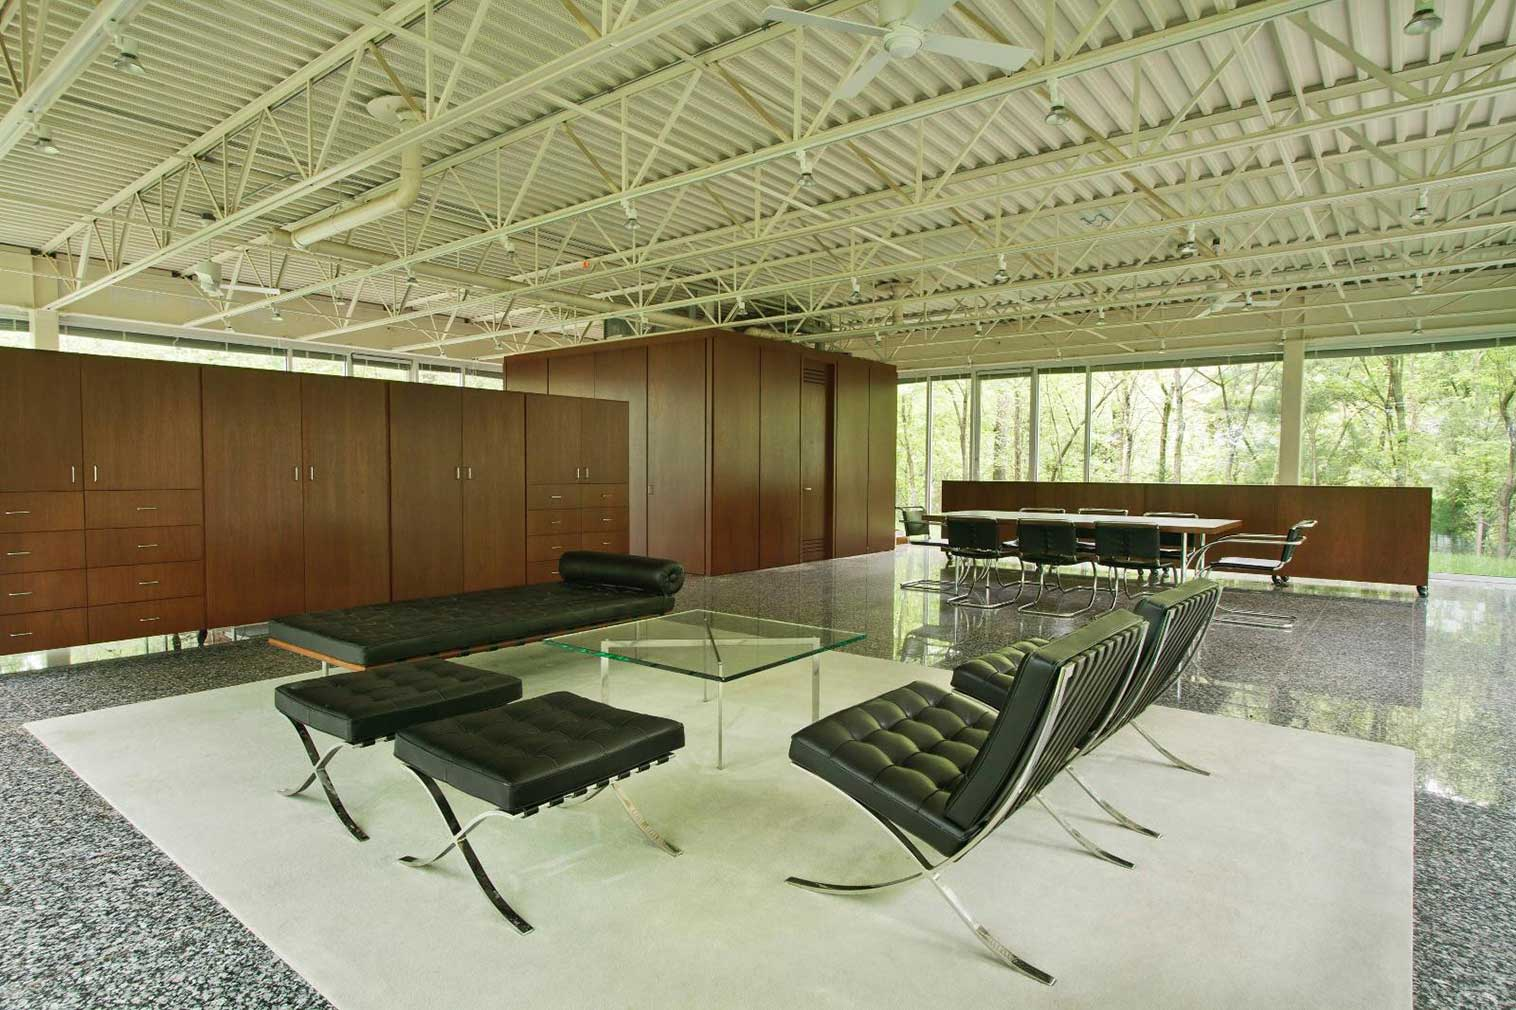 Modernist home for sale in Knoxville Tennessee designed by William Starke Shell